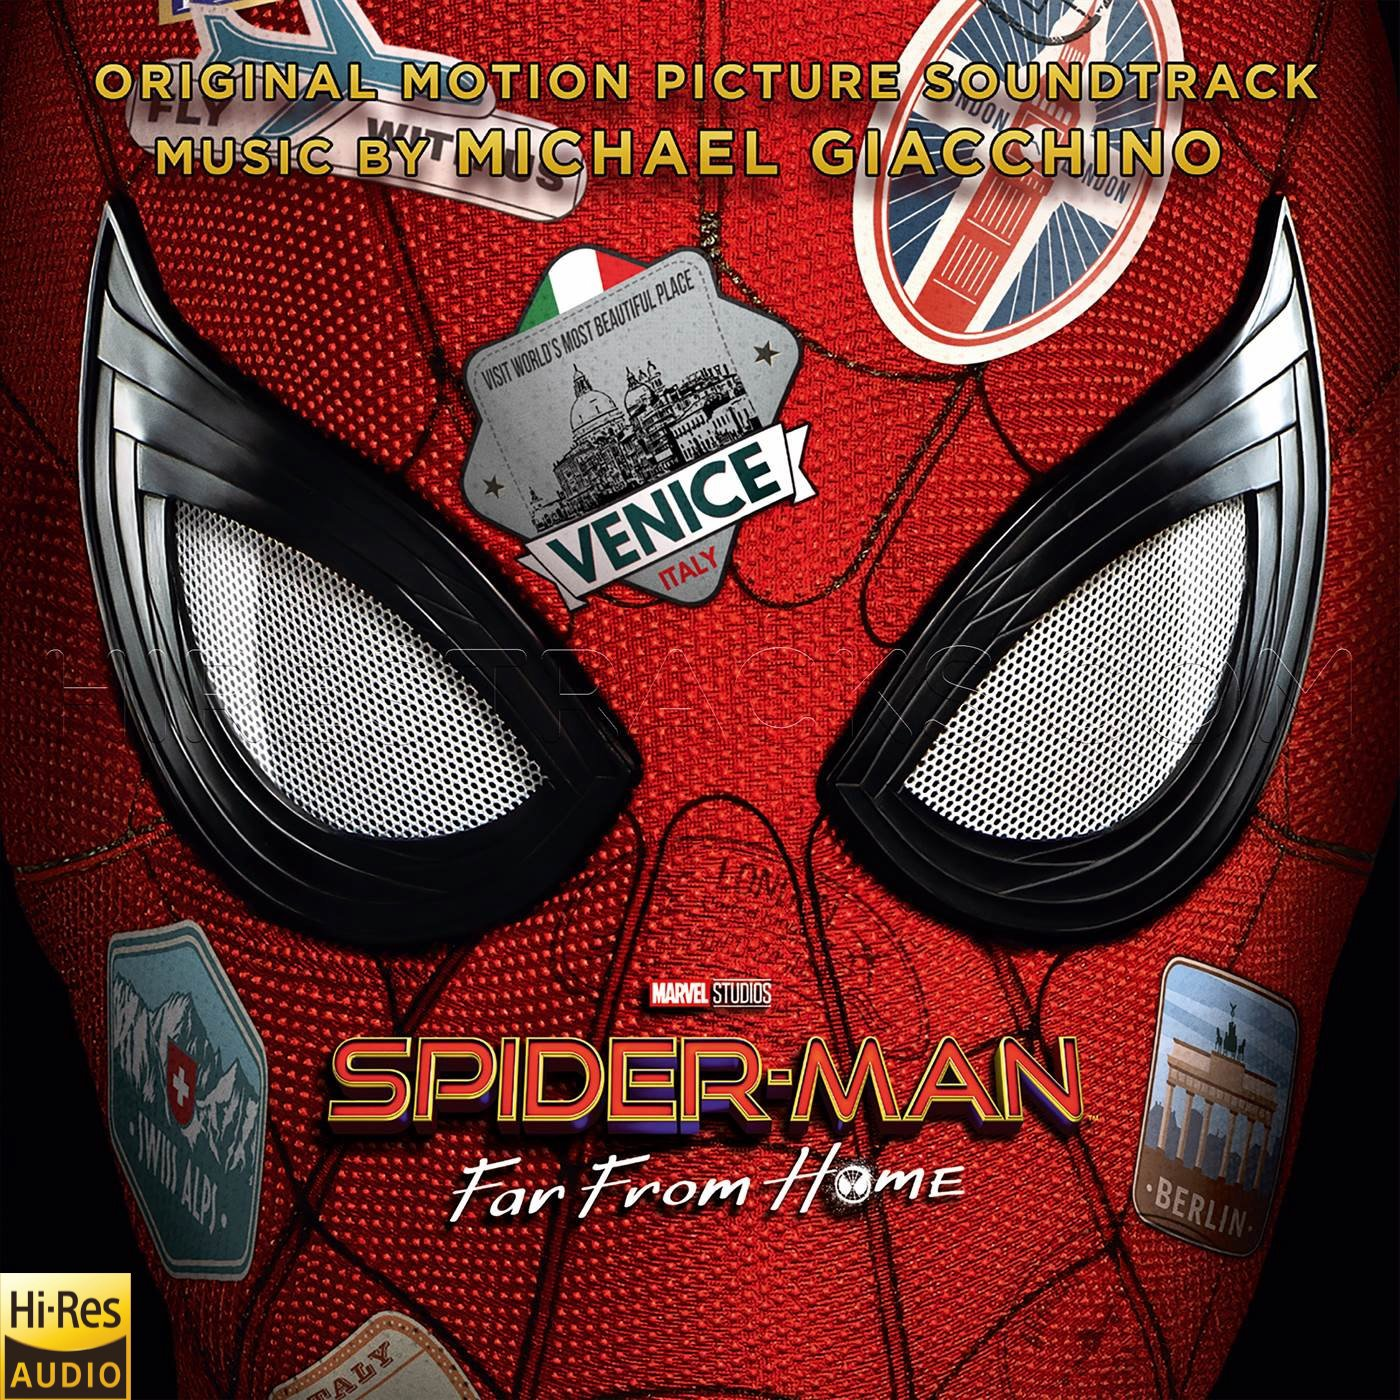 Spider-Man Far from Home (2019) (Michael Giacchino) [24 BIT – 96 KHZ]